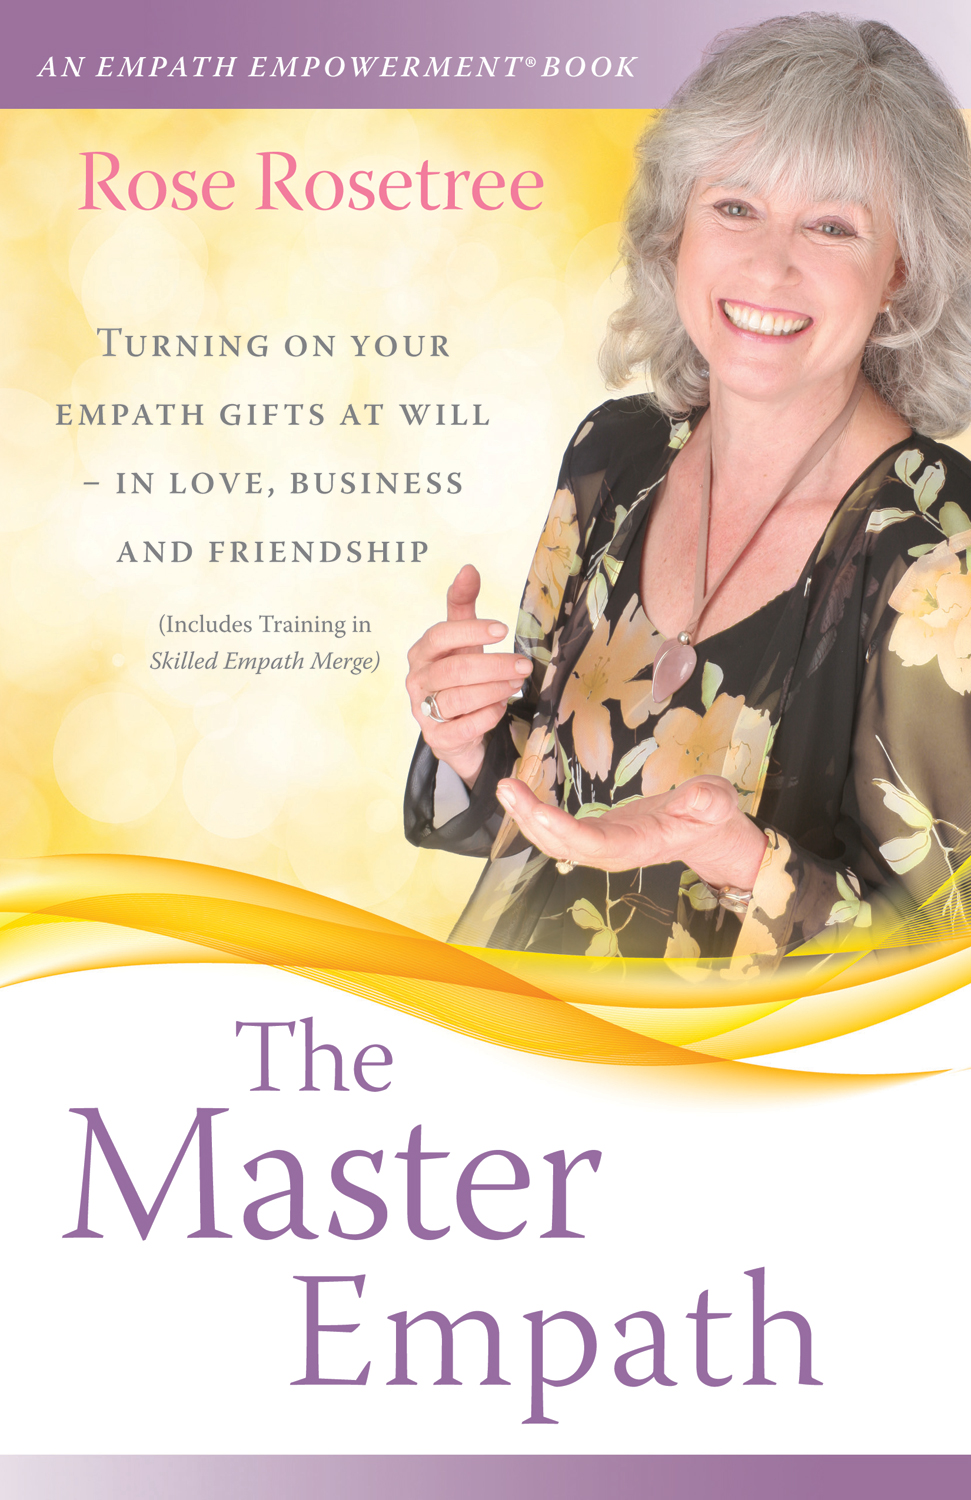 Cover of The Master Empath by Rose Rosetree